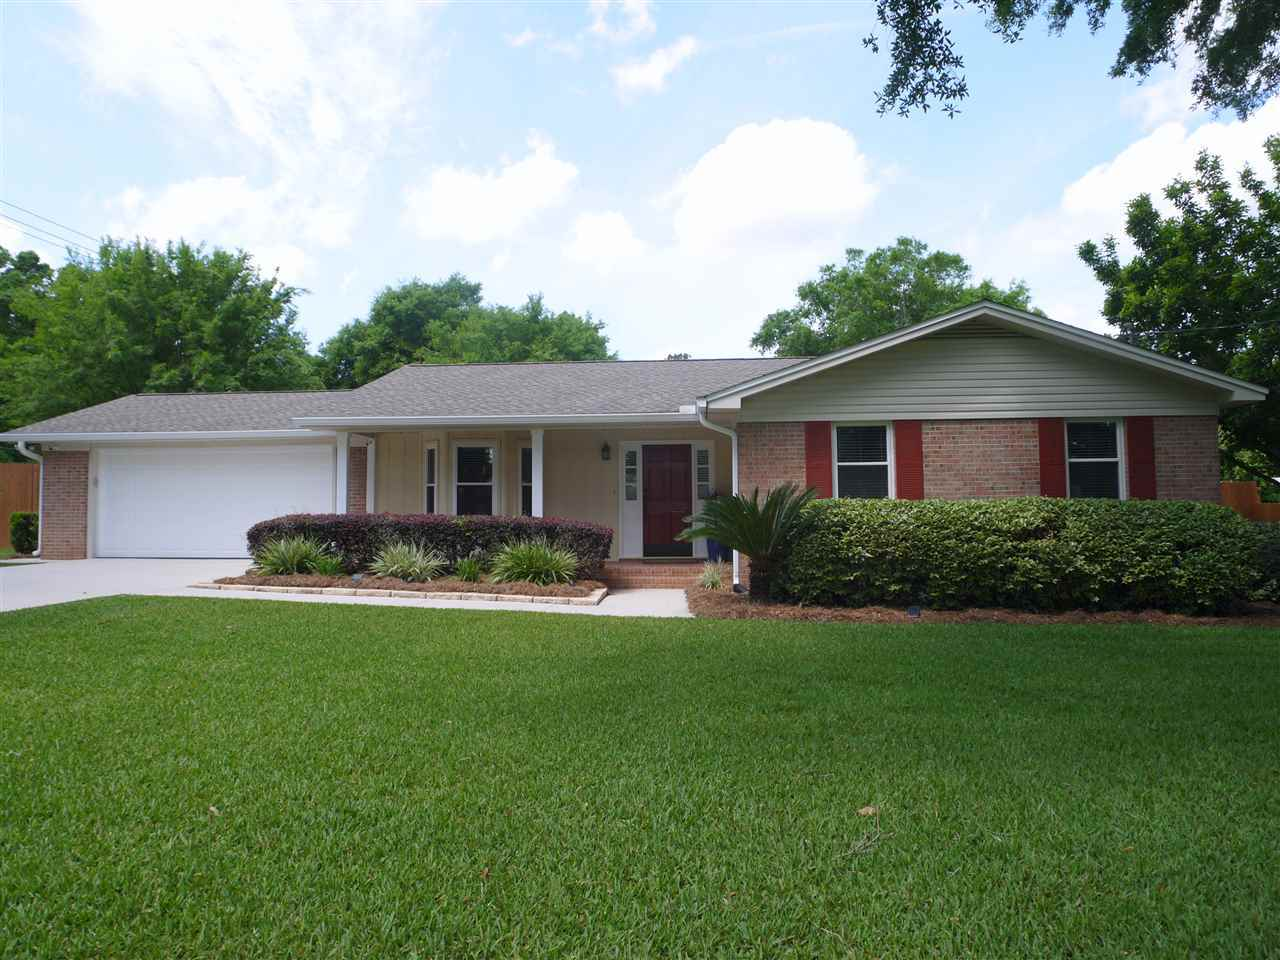 $239,900 - 3Br/2Ba -  for Sale in Sedgefield, Tallahassee